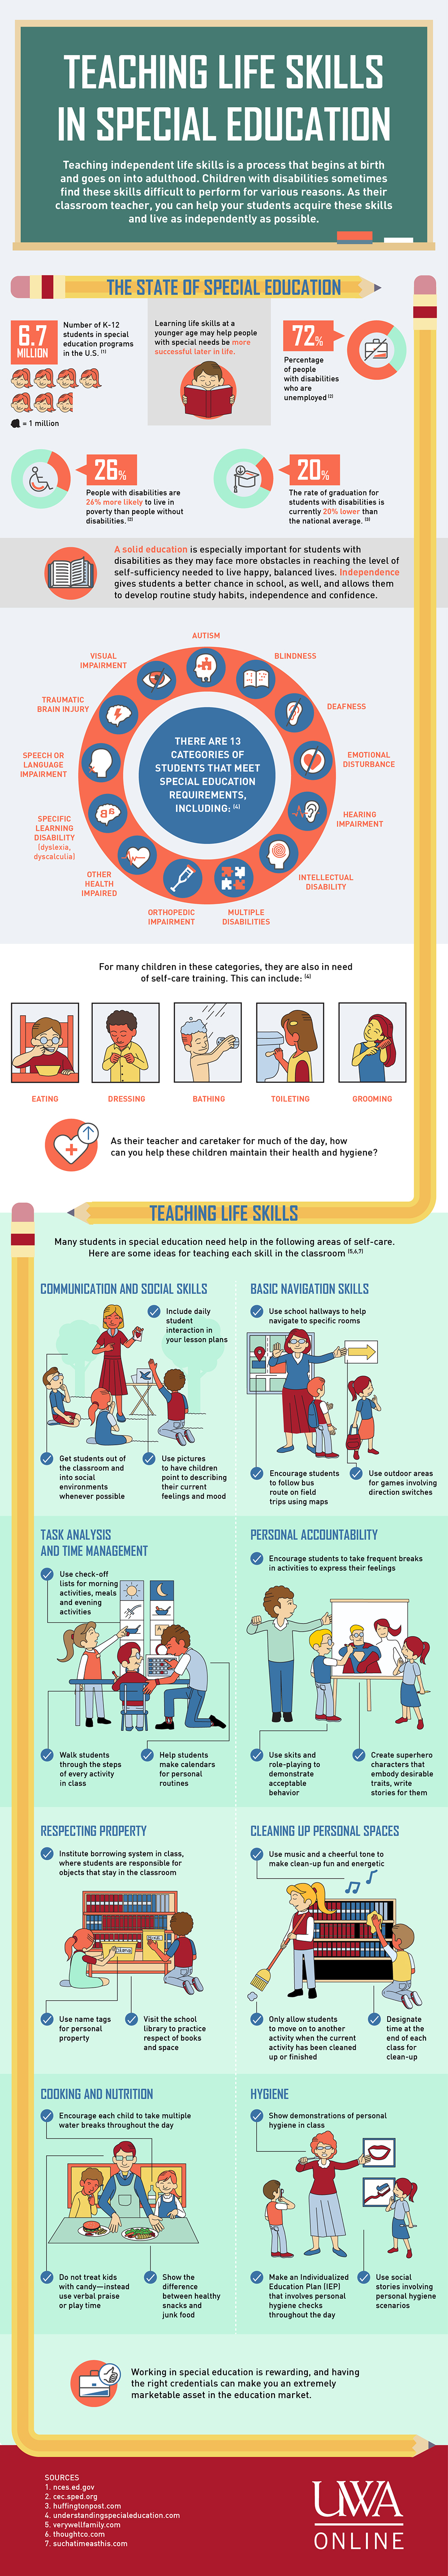 Infographic Trends In Special Education >> Teaching Life Skills In Special Education University Of